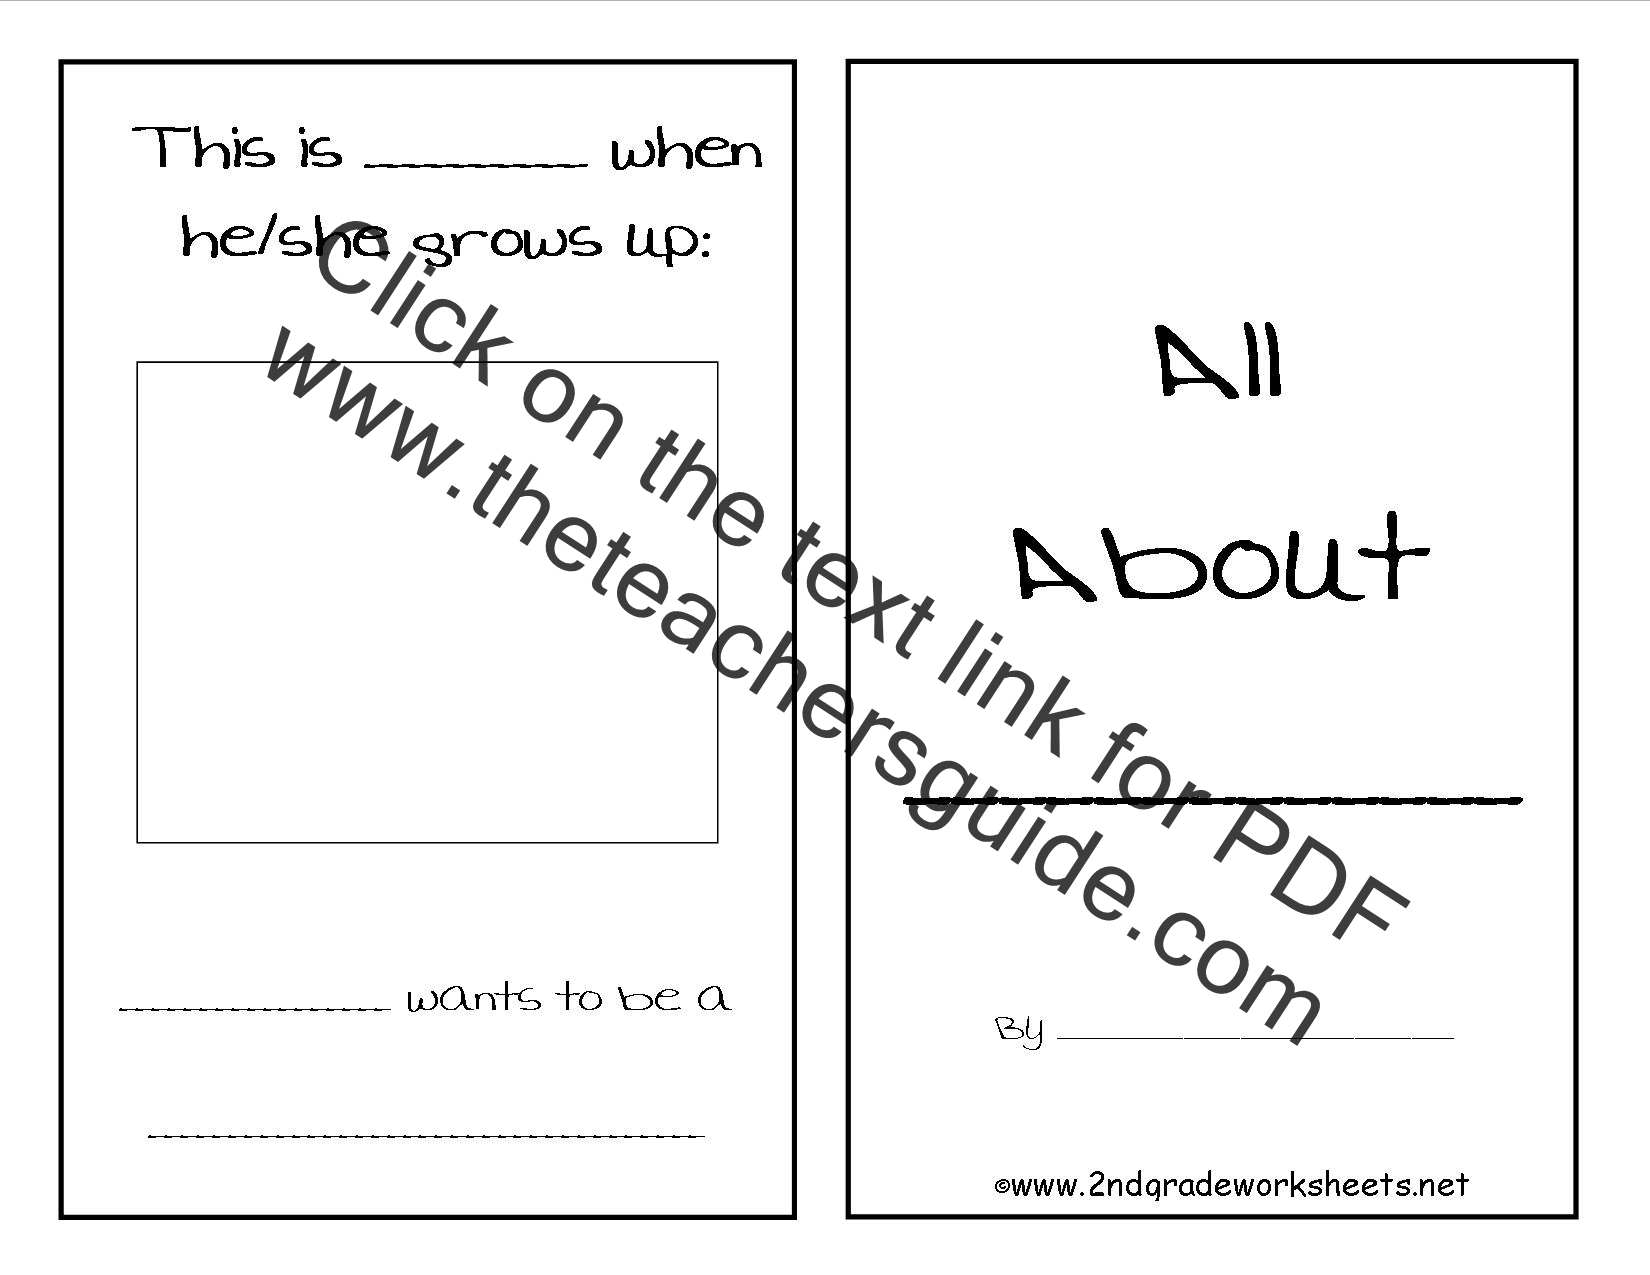 Worksheets School Worksheets free back to school worksheets and printouts all about worksheet about